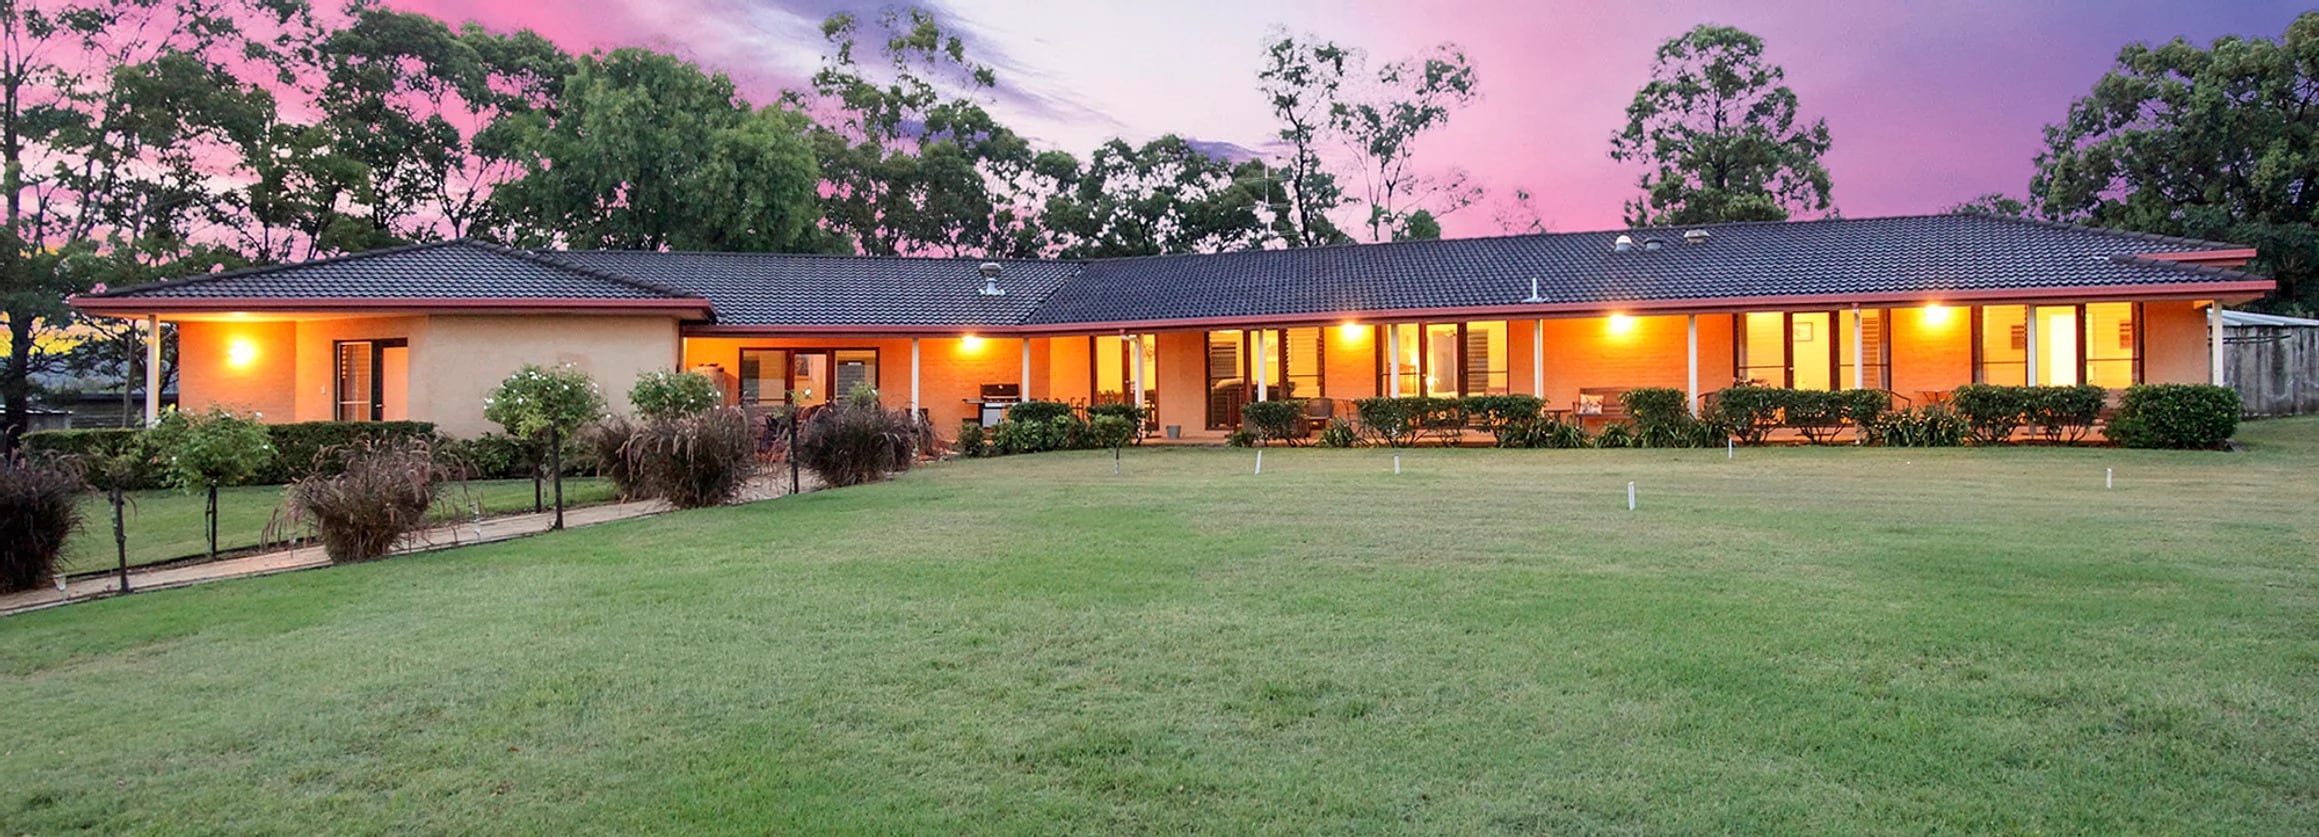 Burncroft Guesthouse - Hunter Valley Tours